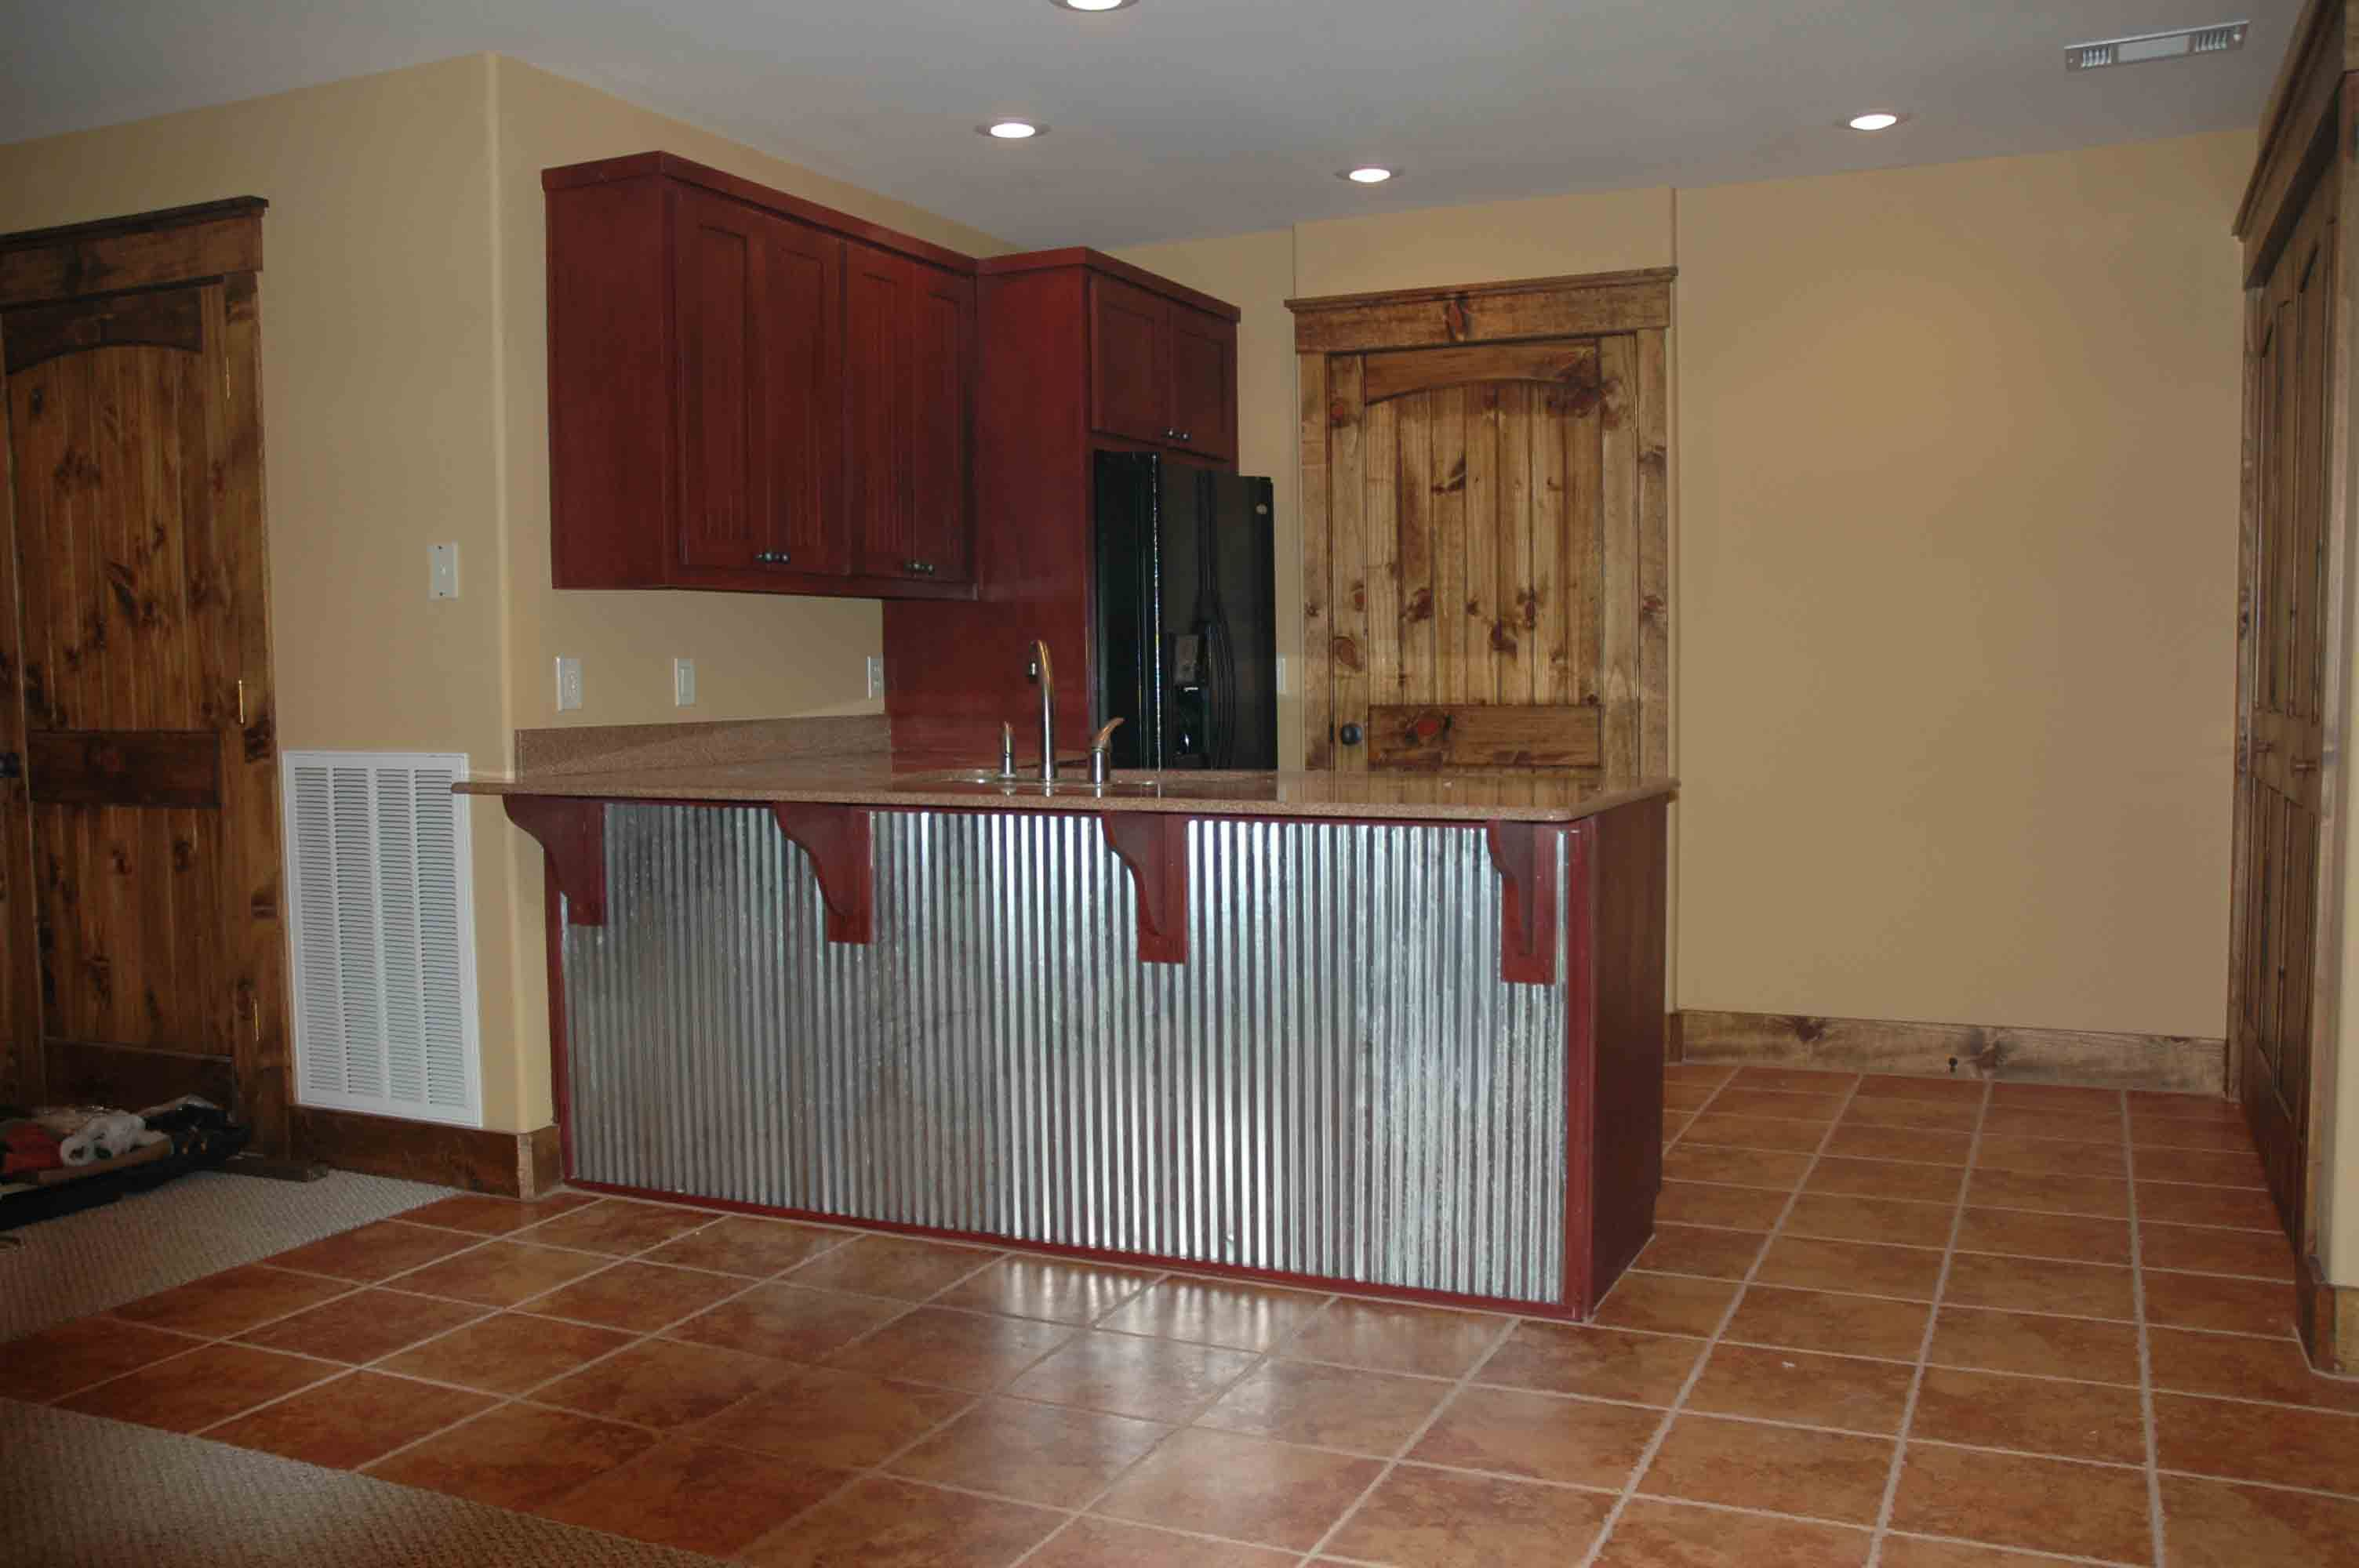 Corrugated Metal On Kitchen Island Home Remodeling Home